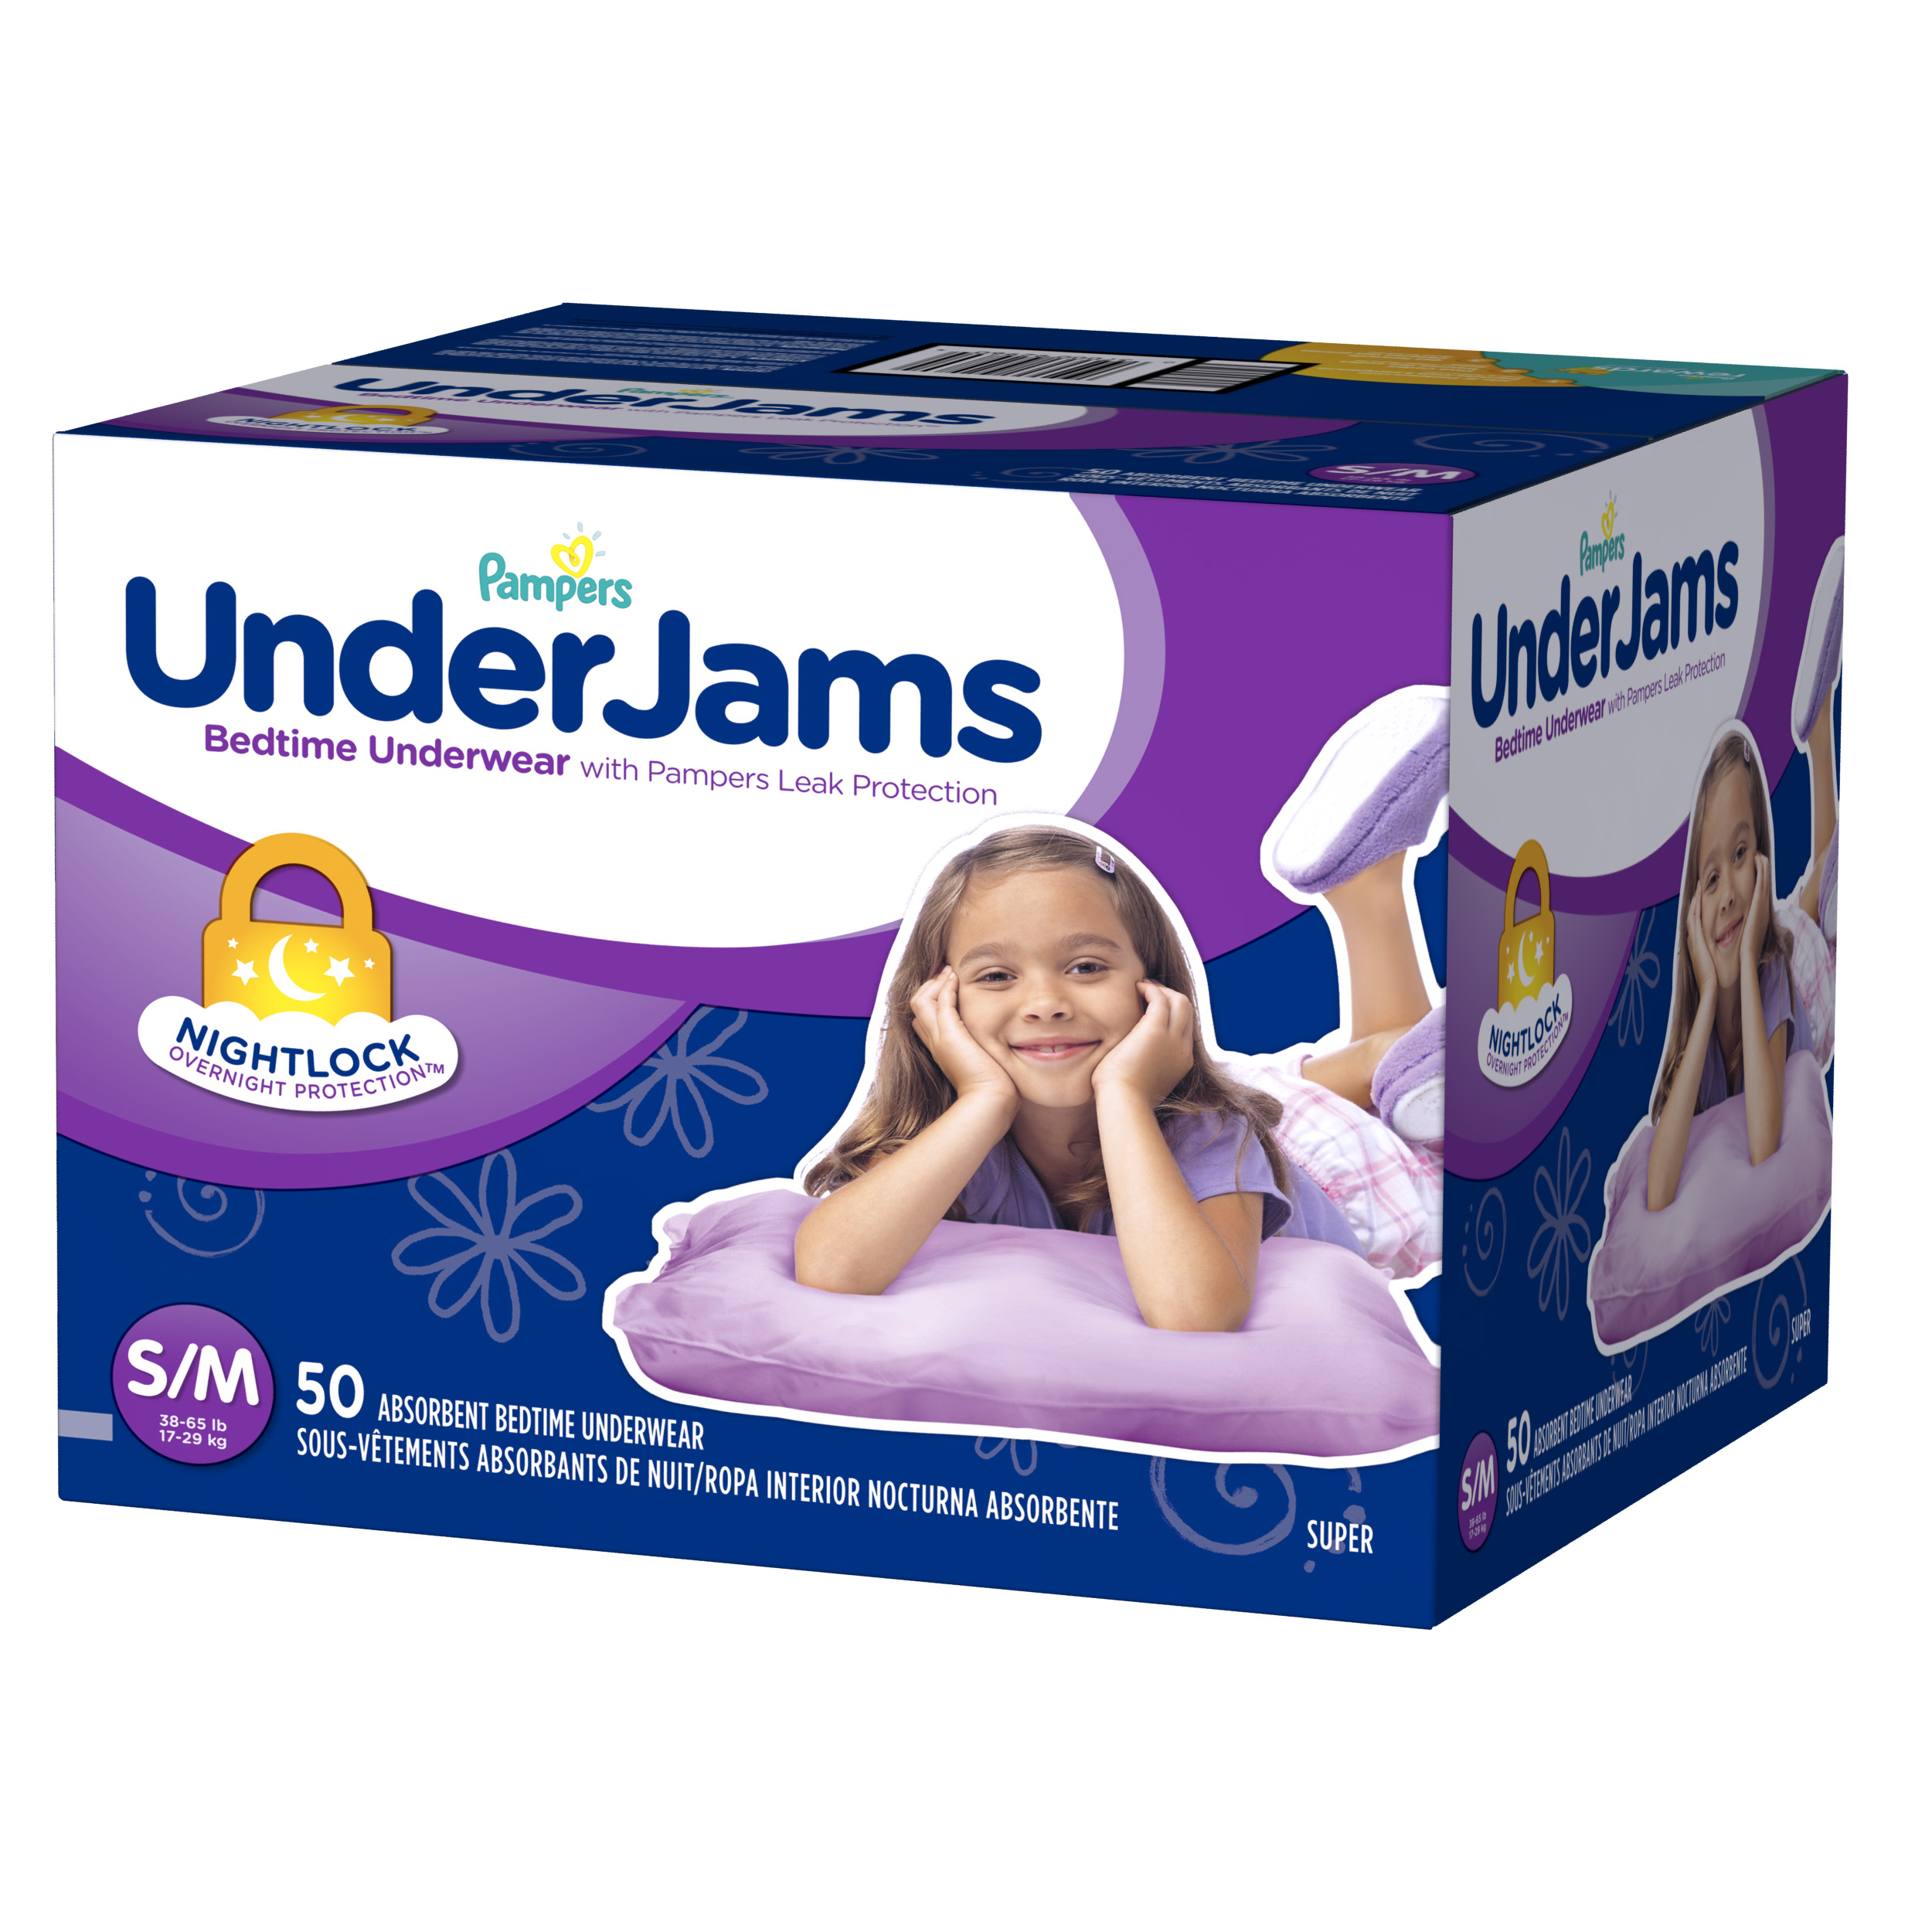 Pampers UnderJams Bedtime Underwear Girls Size S/M 50 count